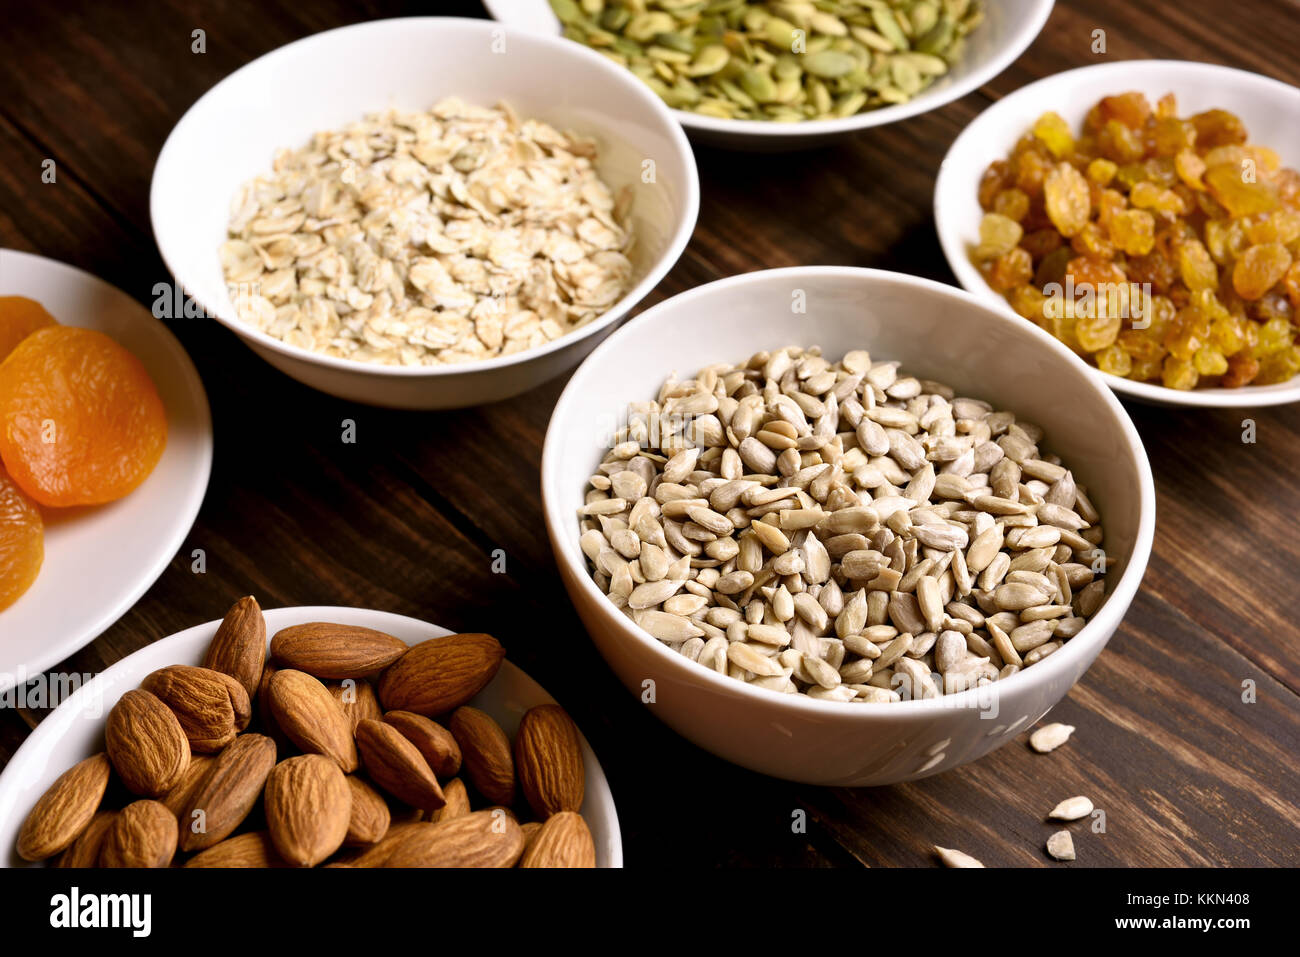 Healthy breakfast with nuts, seeds and dried fruits. Concept of natural organic food - Stock Image